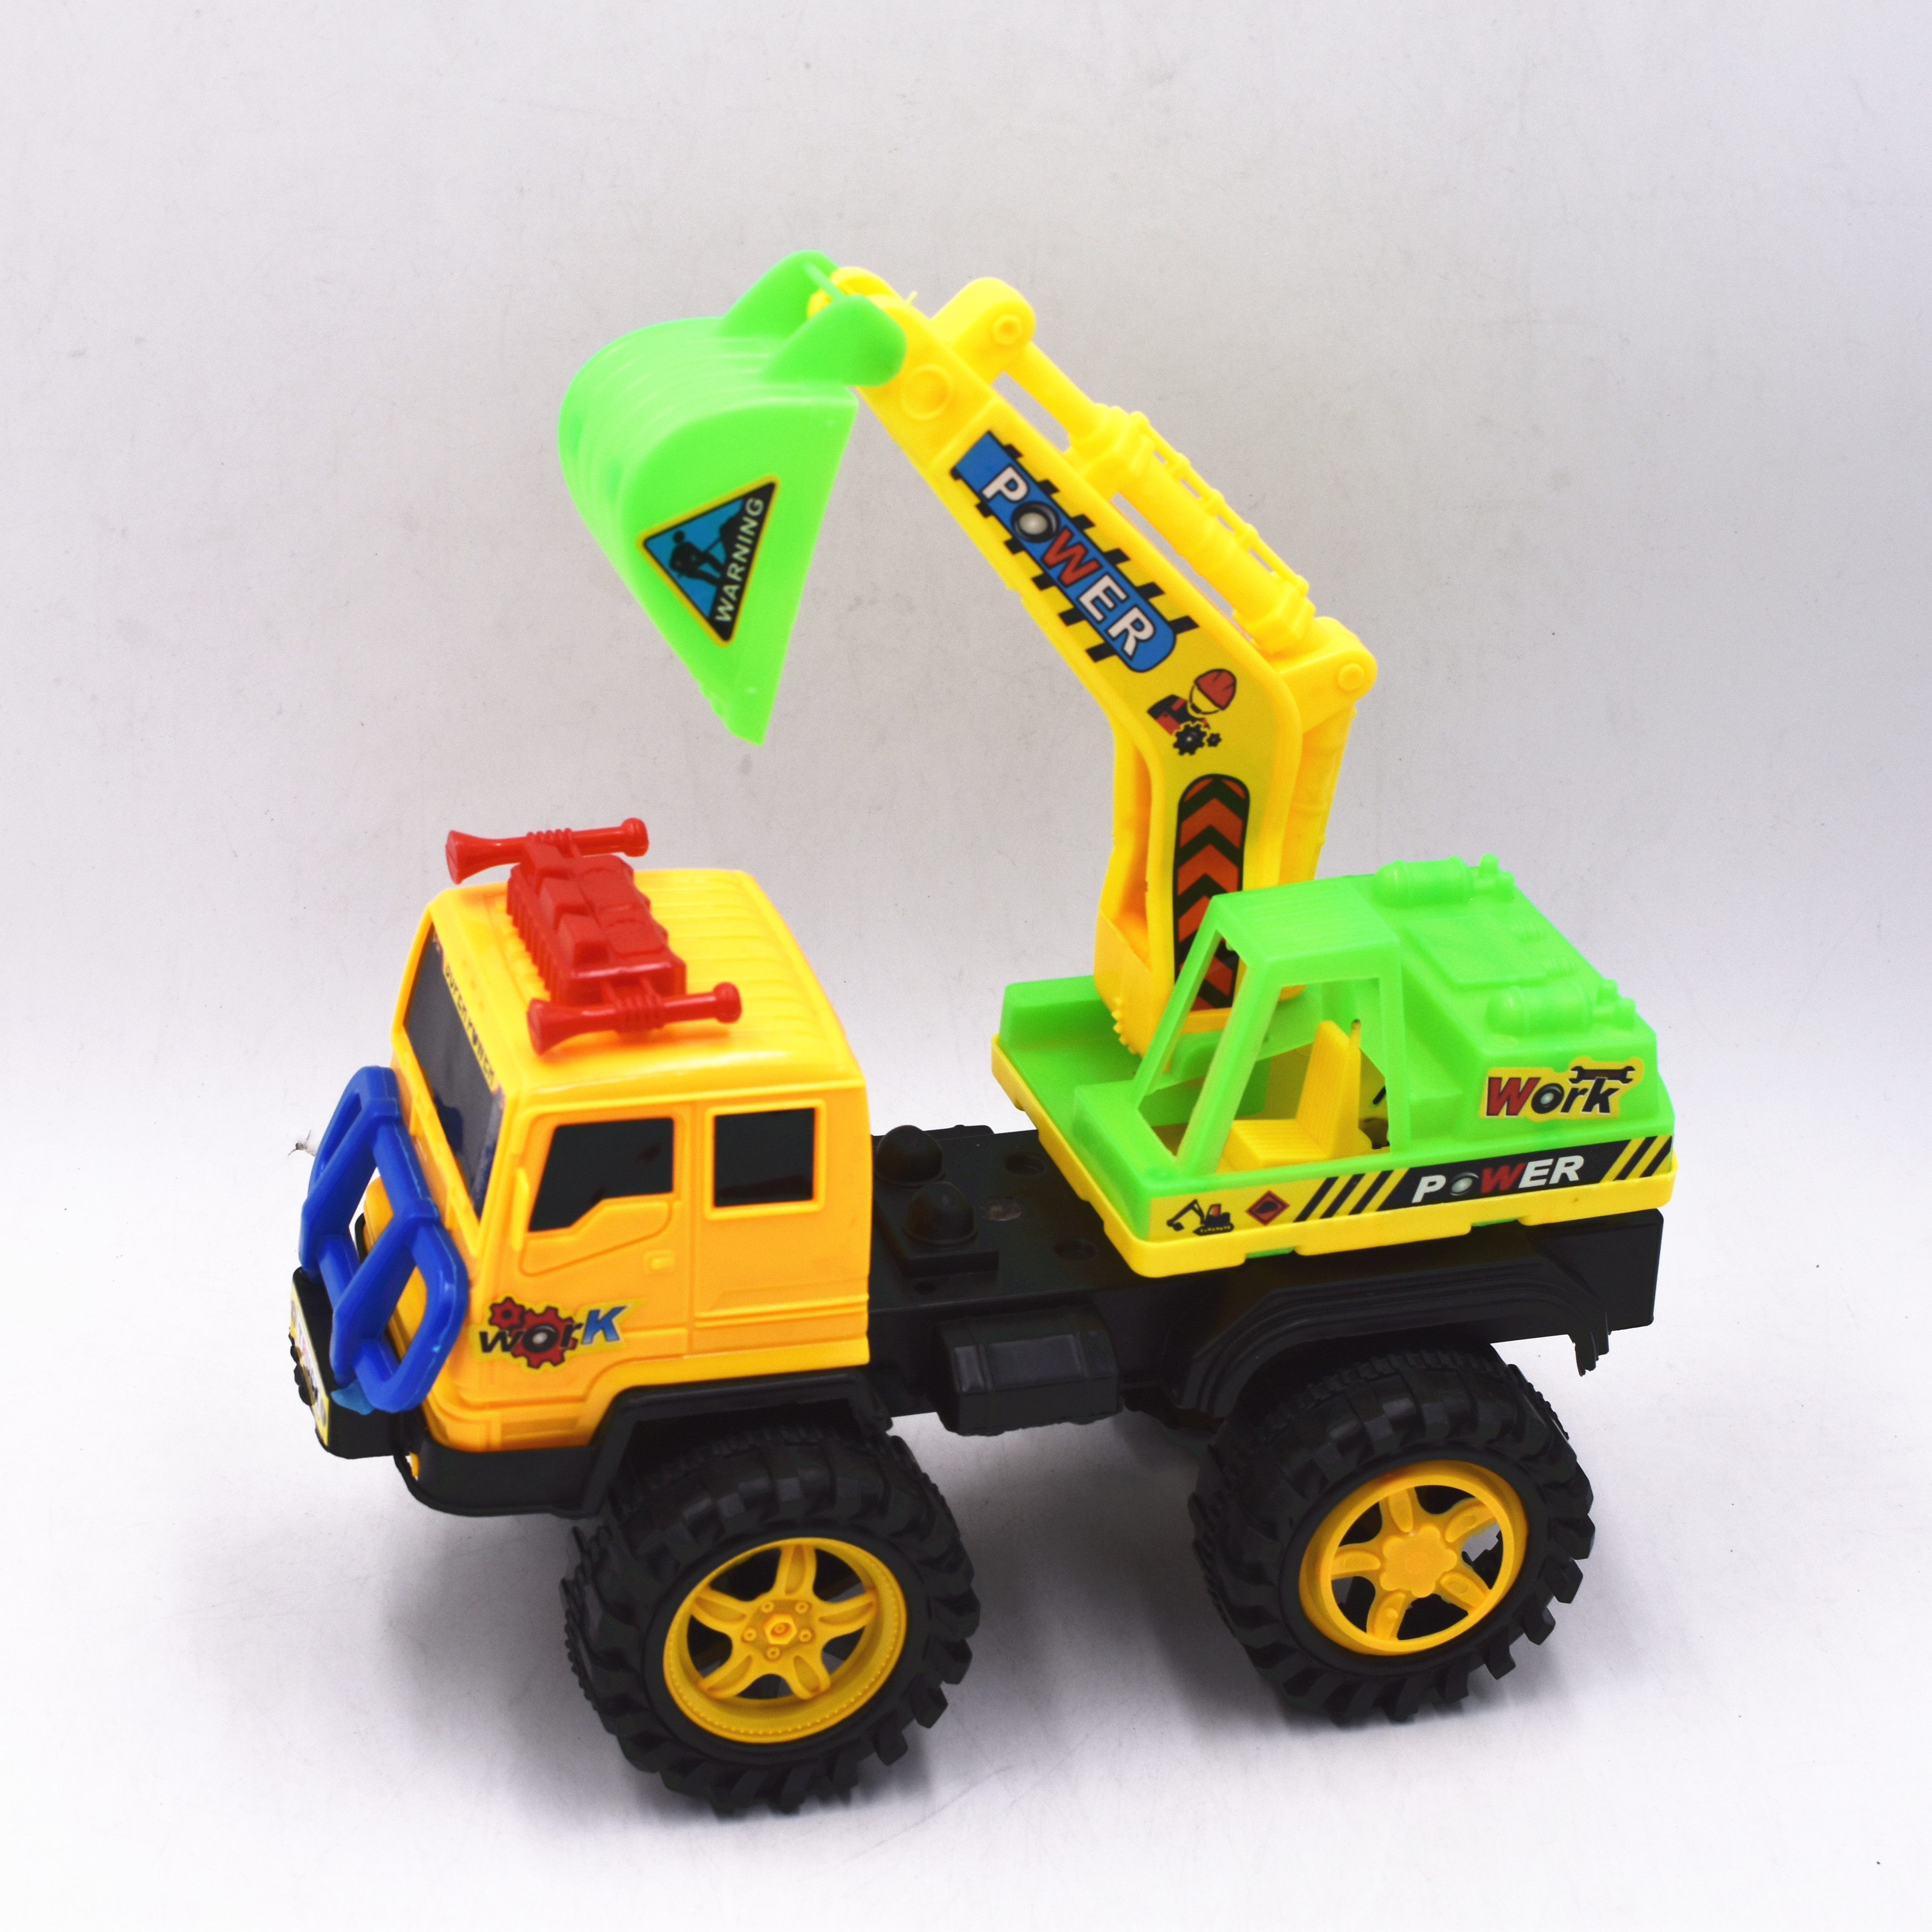 FREE WHEEL TRUCK TOY LY1709